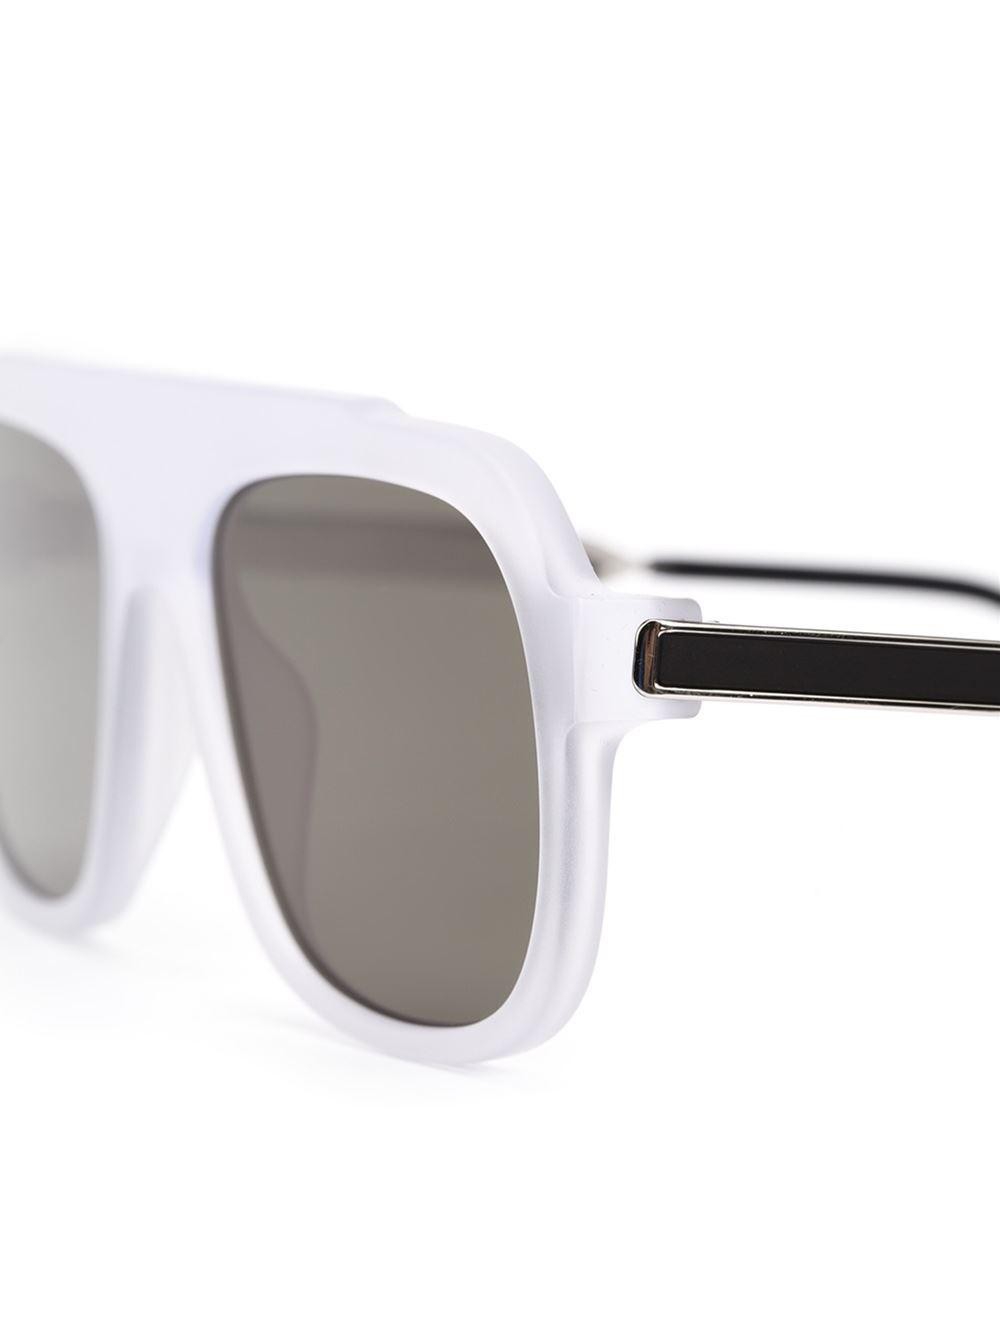 Thierry Lasry 'velocity' Sunglasses in White